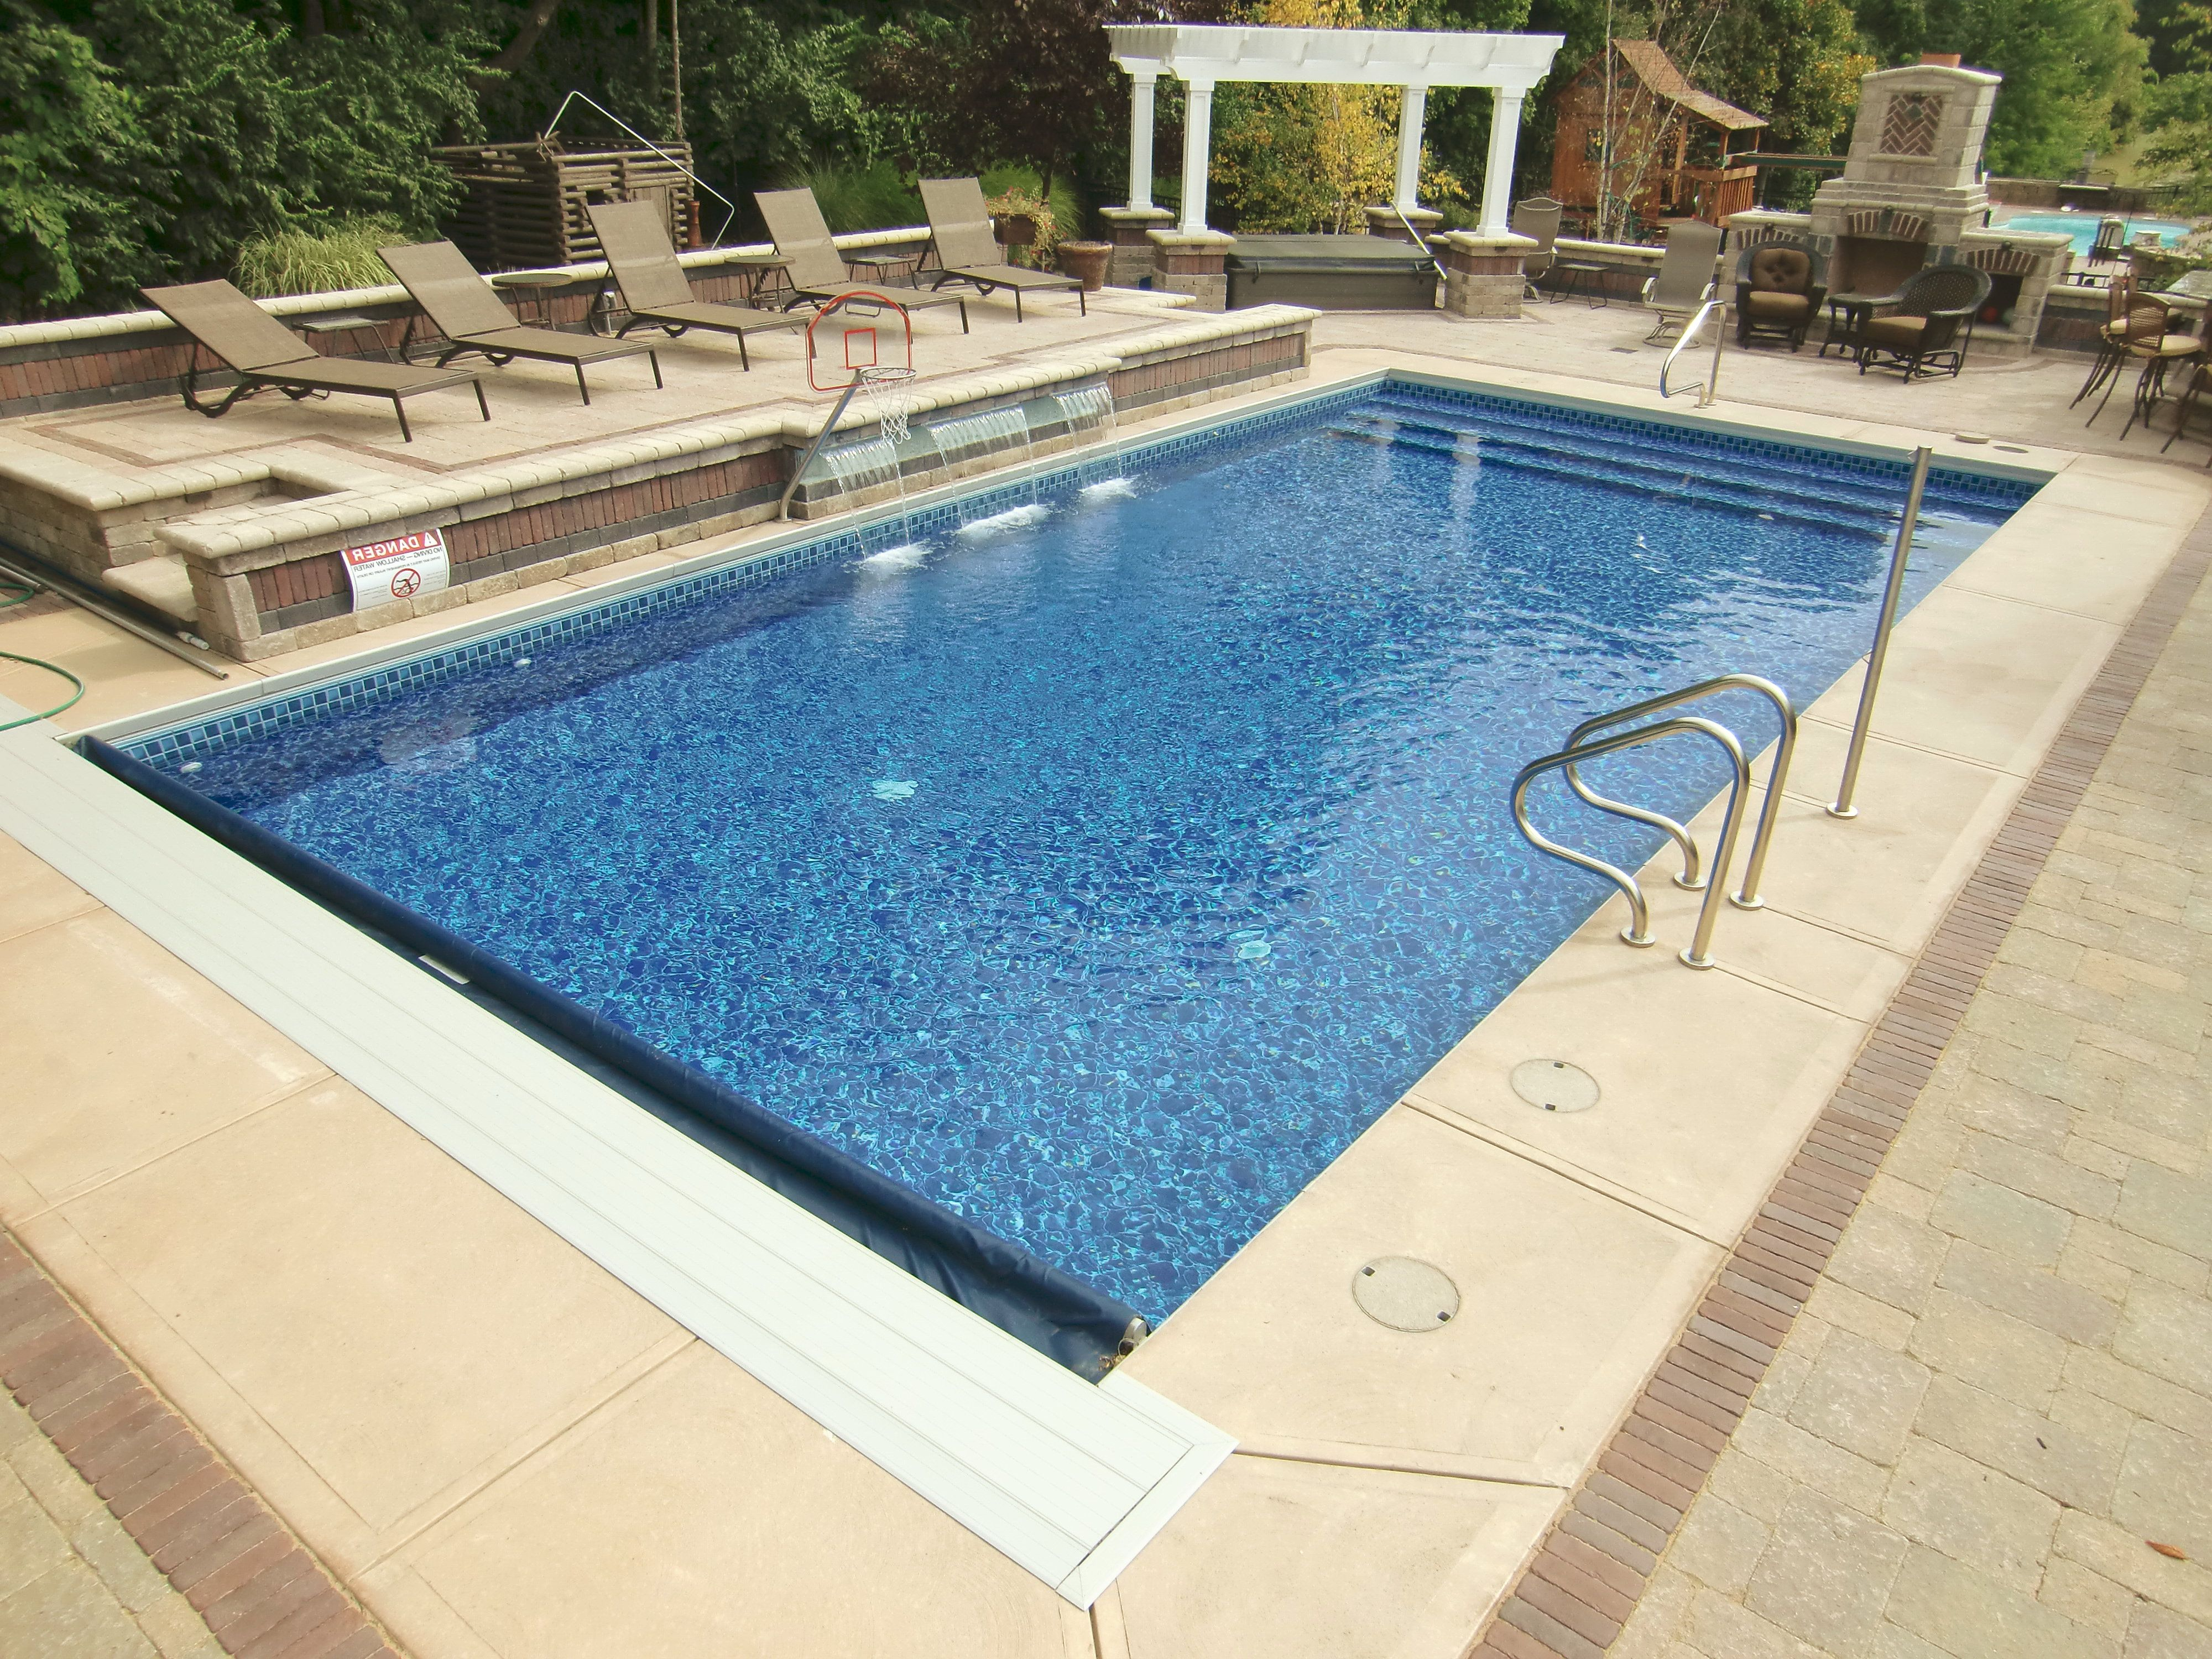 6 Inch Radius Rectangle Pool With Vinyl Over Steps Under Coping Automatic Cover And Fountains Inground Pool Designs Rectangle Swimming Pools Backyard Pool